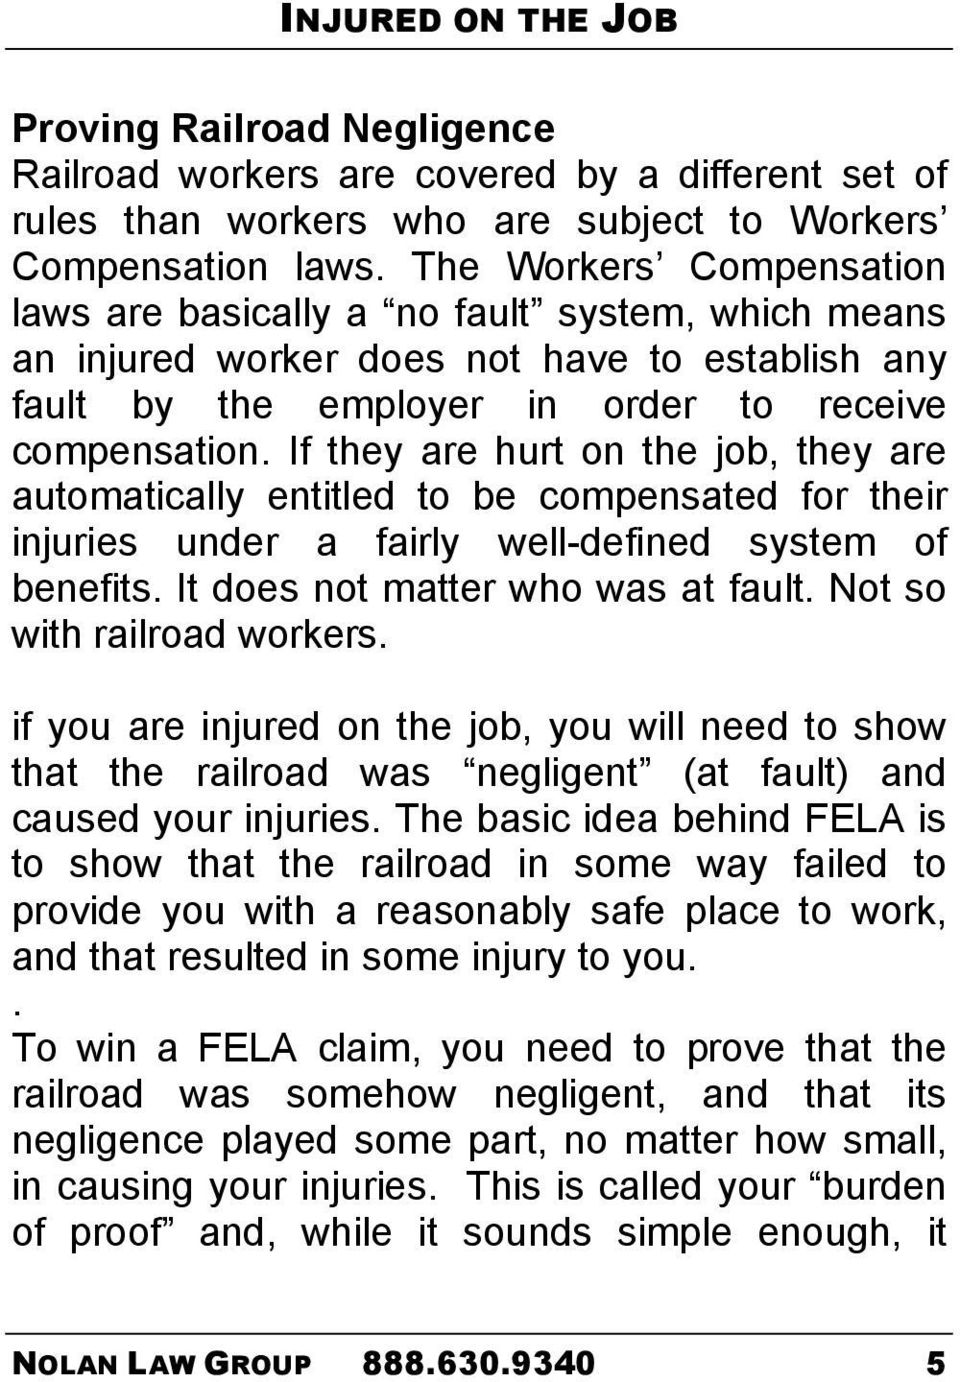 If they are hurt on the job, they are automatically entitled to be compensated for their injuries under a fairly well-defined system of benefits. It does not matter who was at fault.